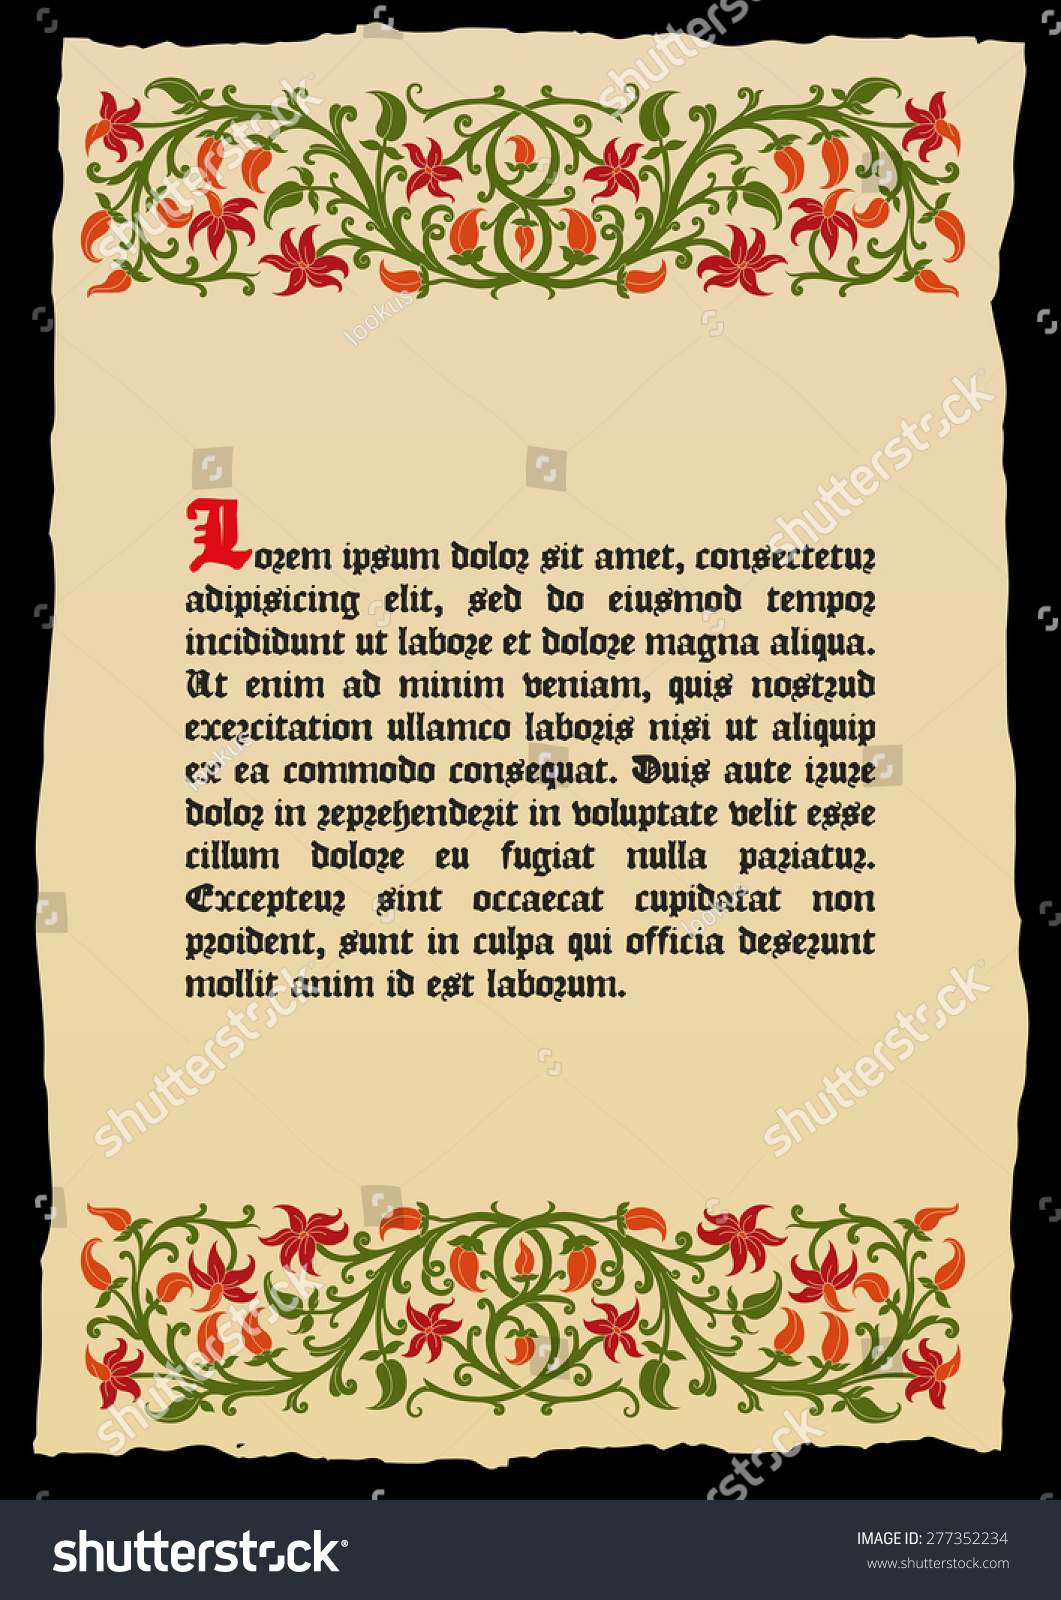 Template book page in a medieval style. Place for text. Floral frame of  interwoven